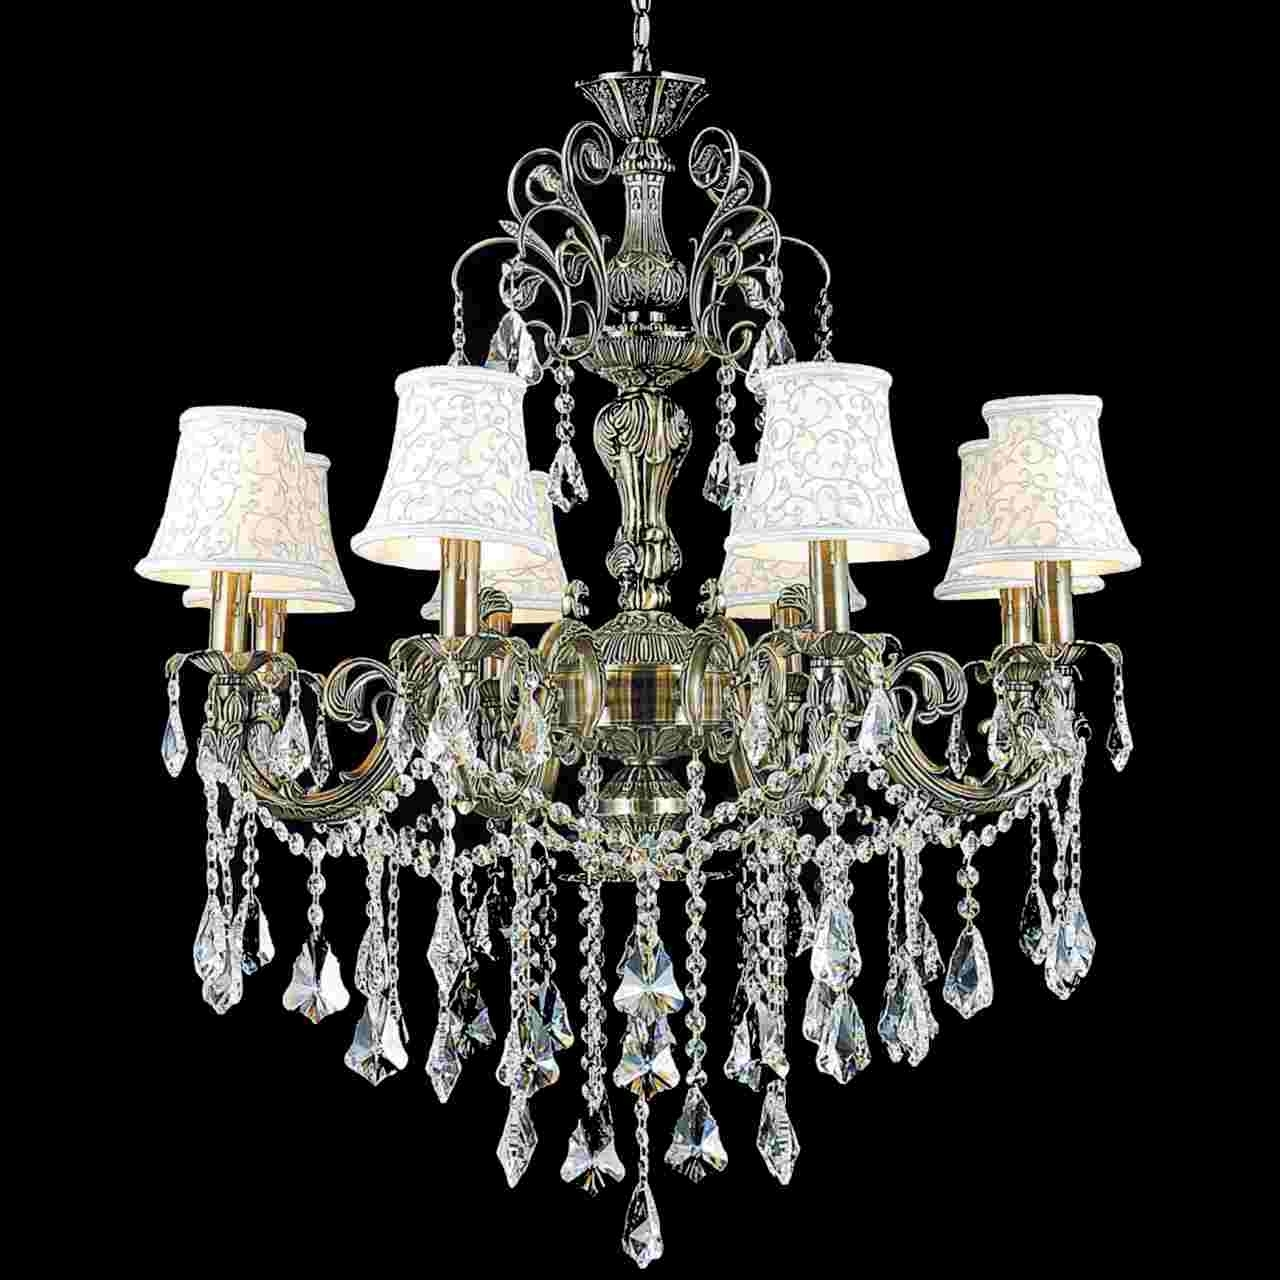 Chandeliers With Lamp Shades Regarding Preferred Brizzo Lighting Stores (View 5 of 20)